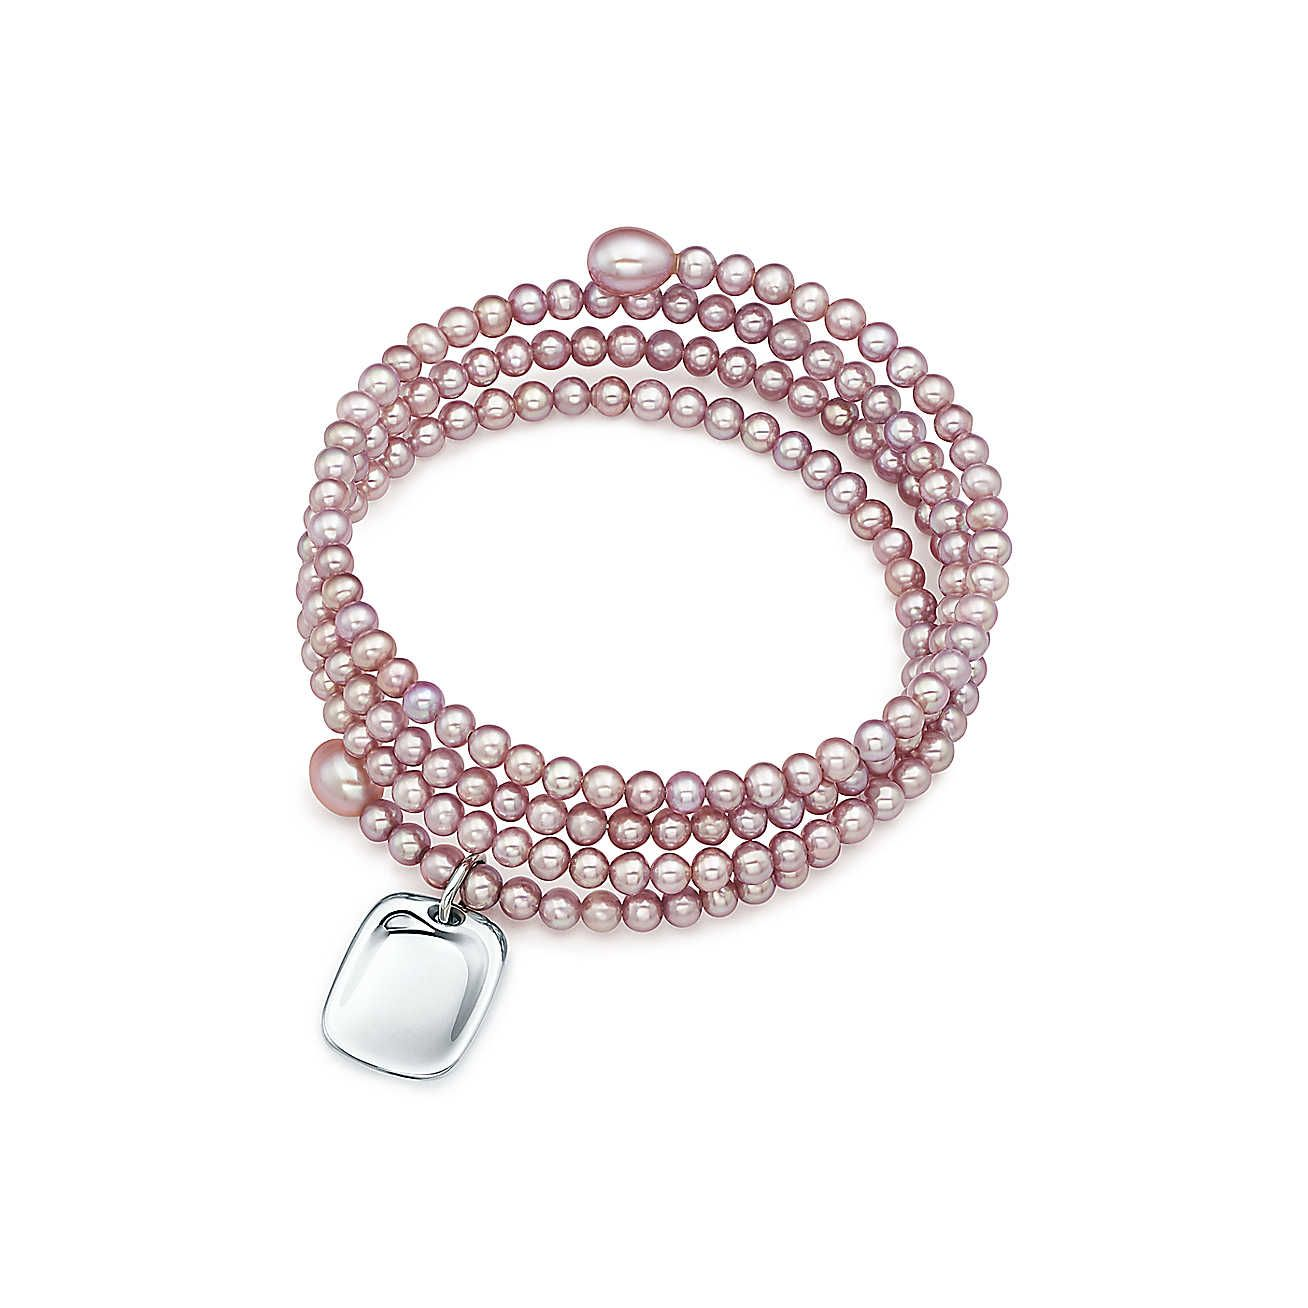 shop akoya jewelry mikimoto zadok pearls bracelet with honeycomb bracelets nature